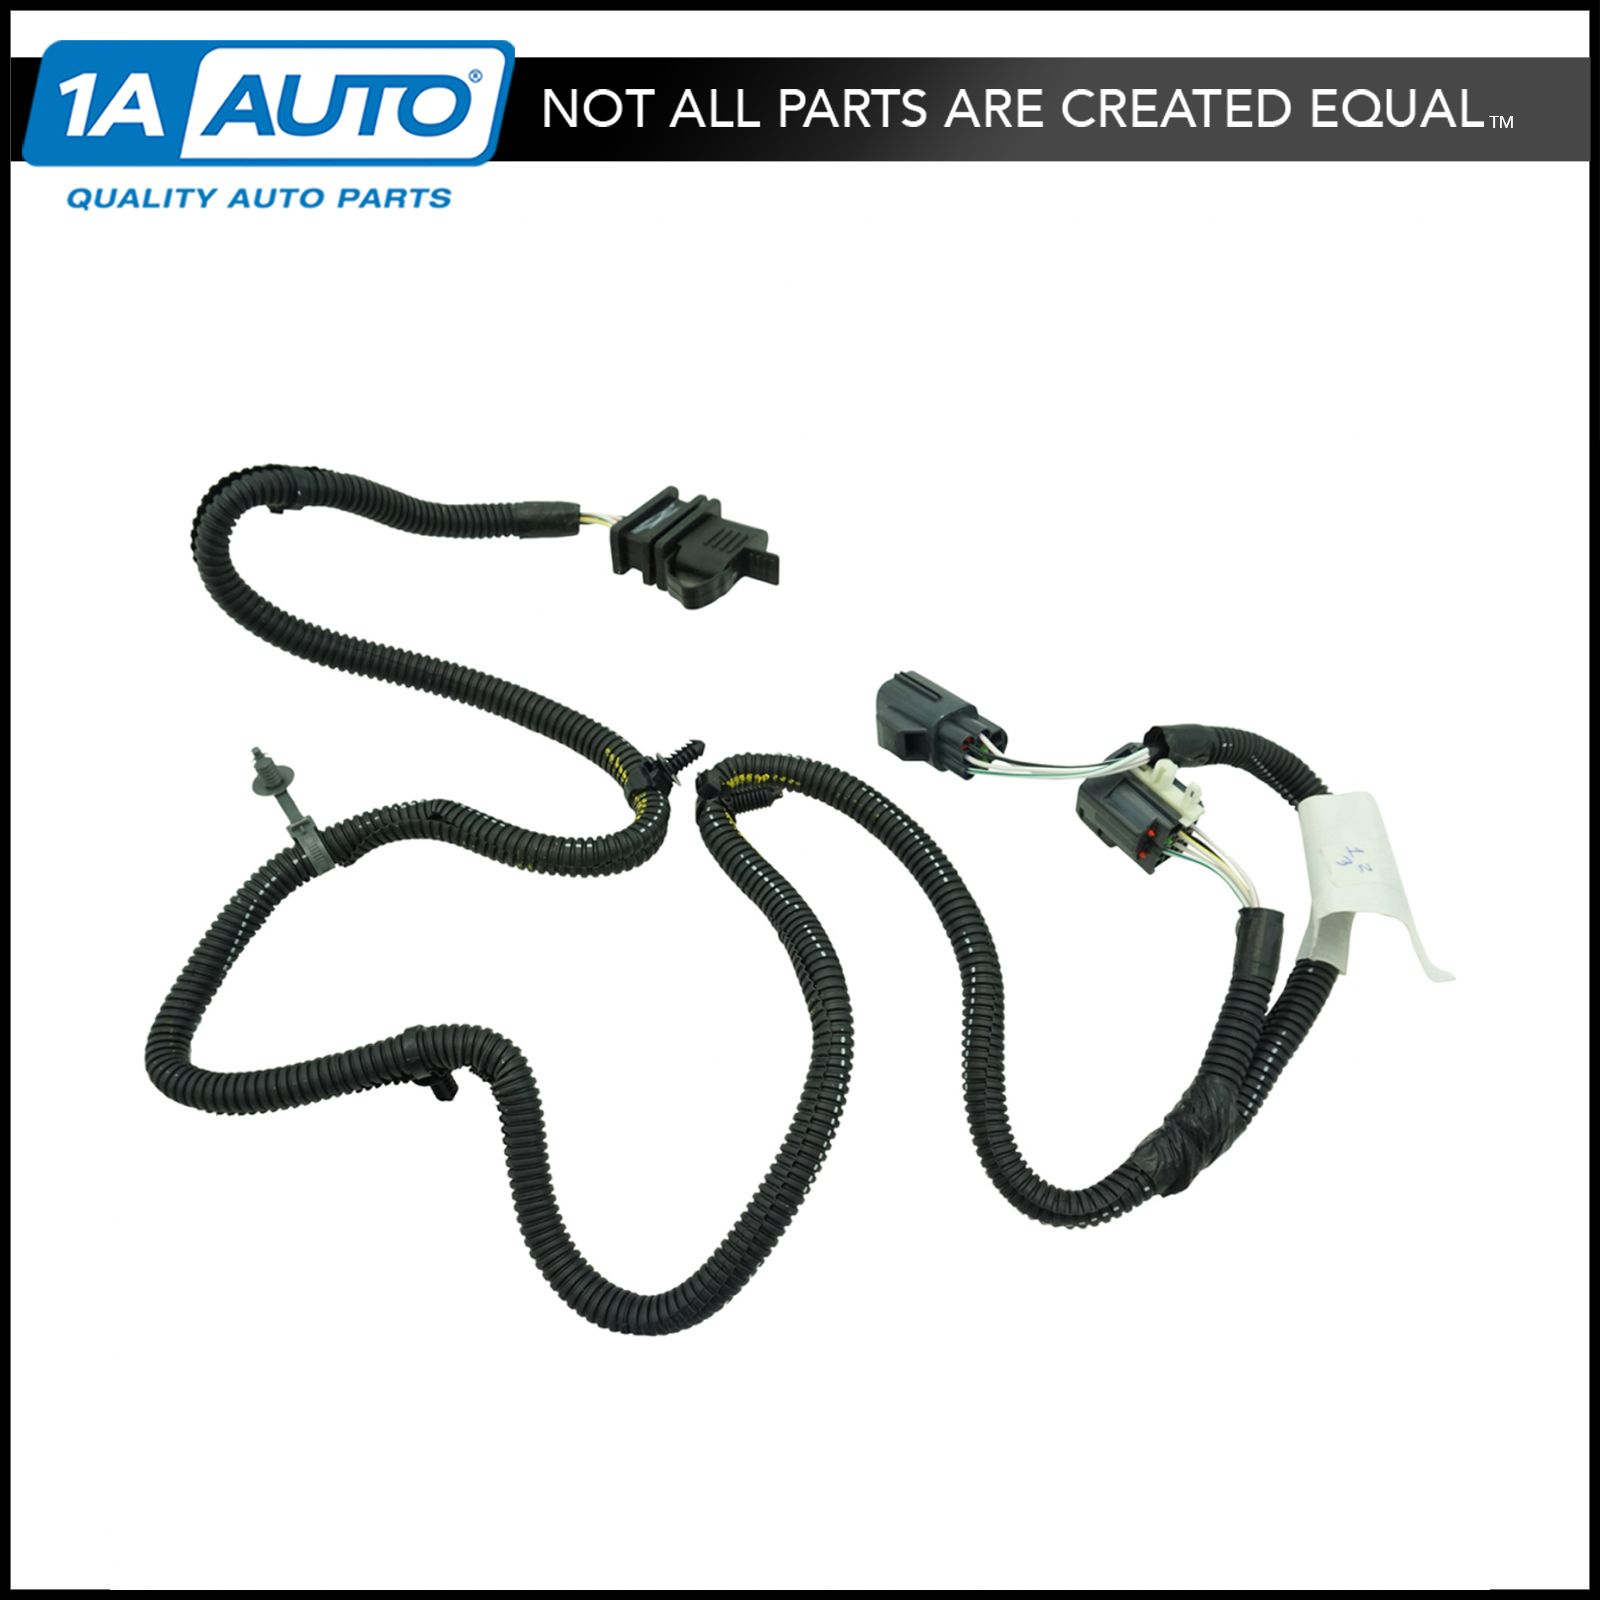 Trailer Wiring Harness For 2008 Jeep Wrangler : Oem ac trailer towing plug wiring harness pin